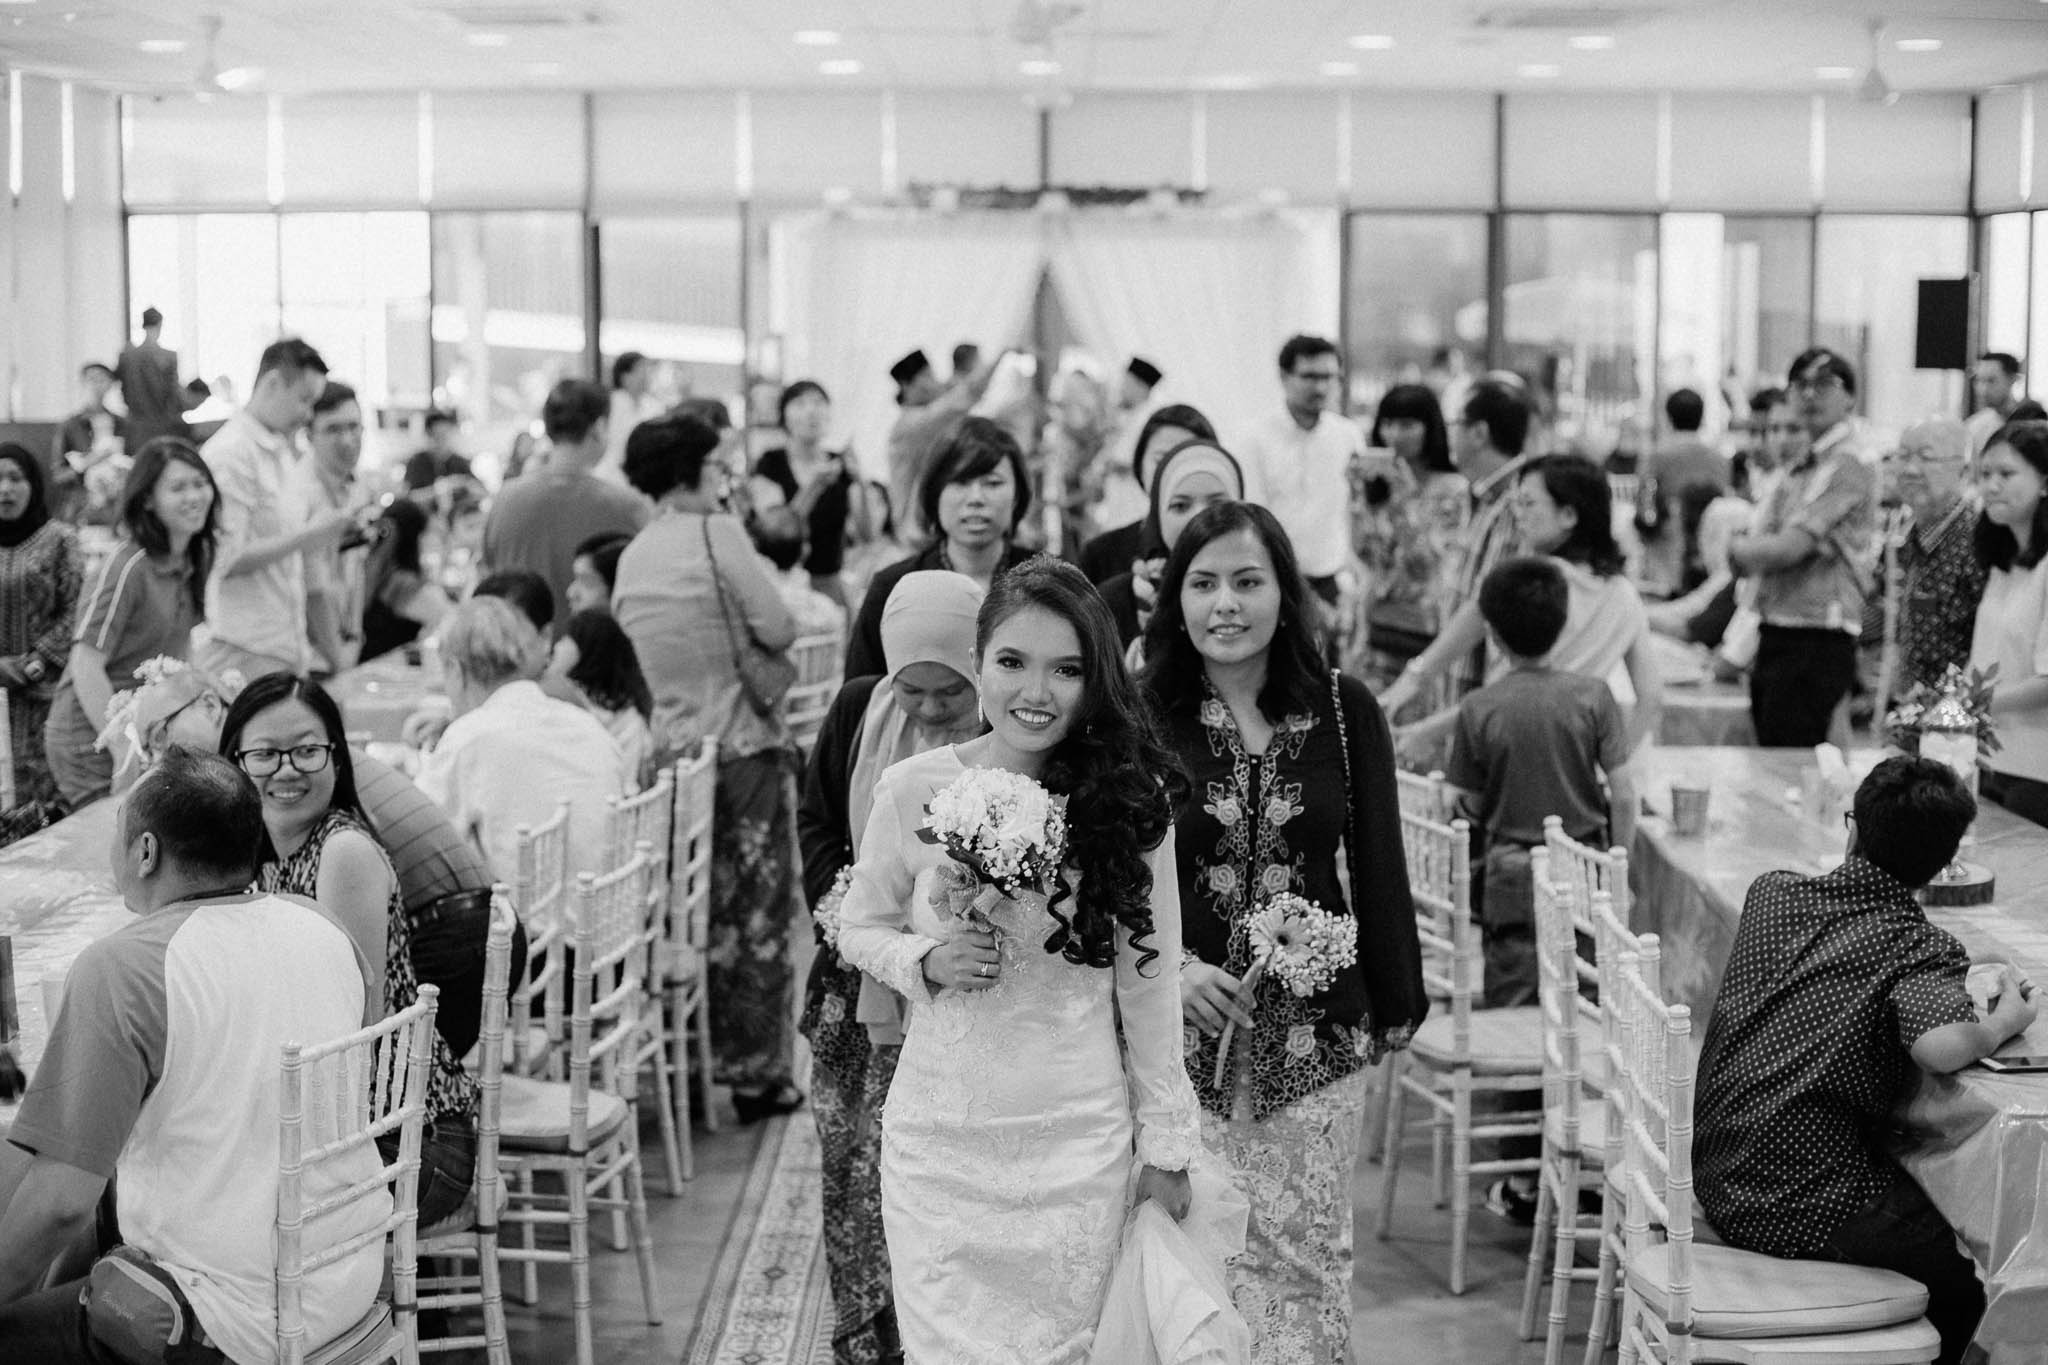 singapore-wedding-photographer-wedding-halimah-muhsin-031.jpg